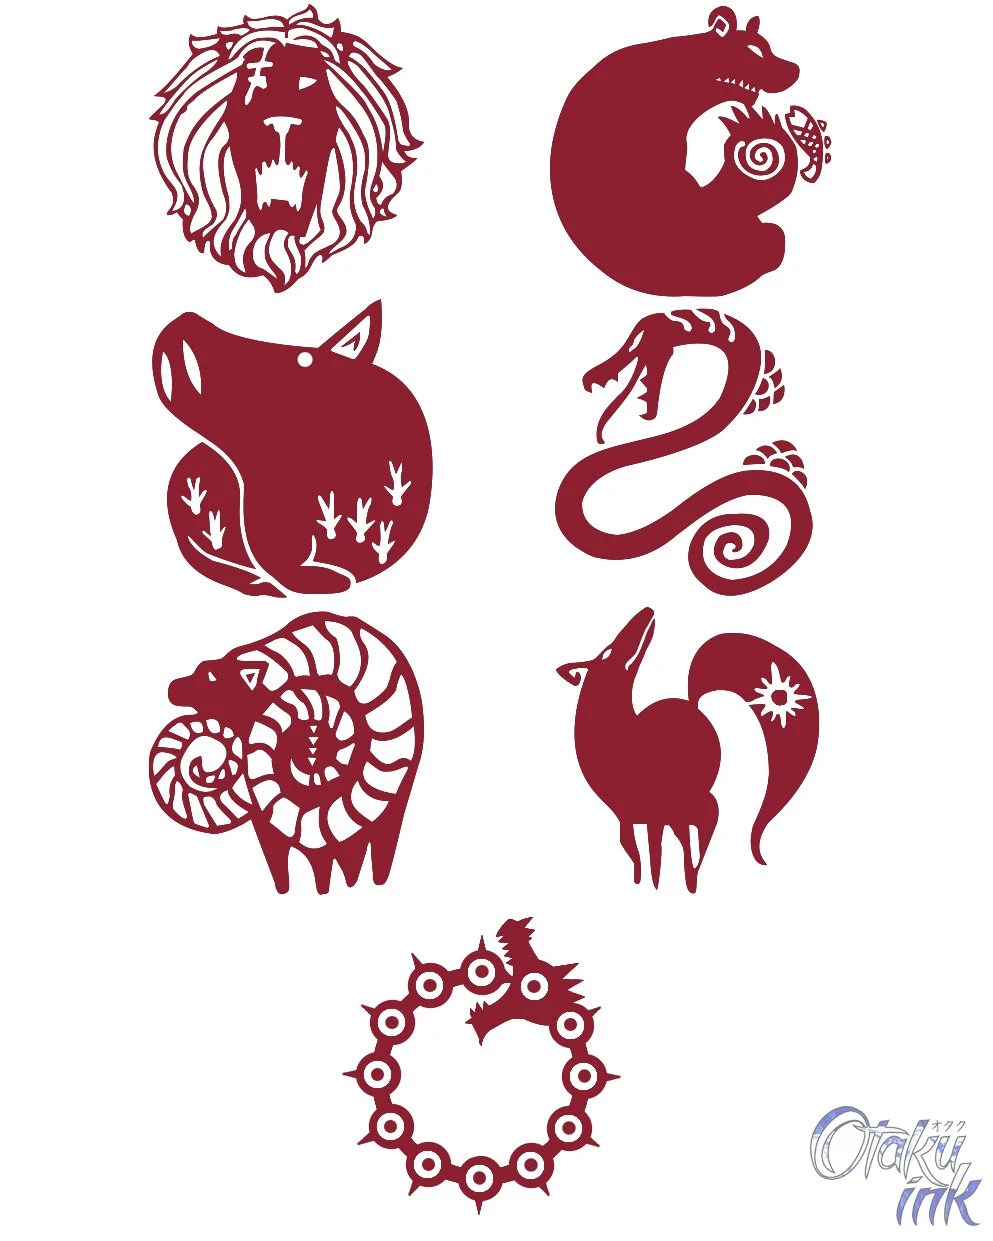 Seven Deadly Sins Tattoo Ideas